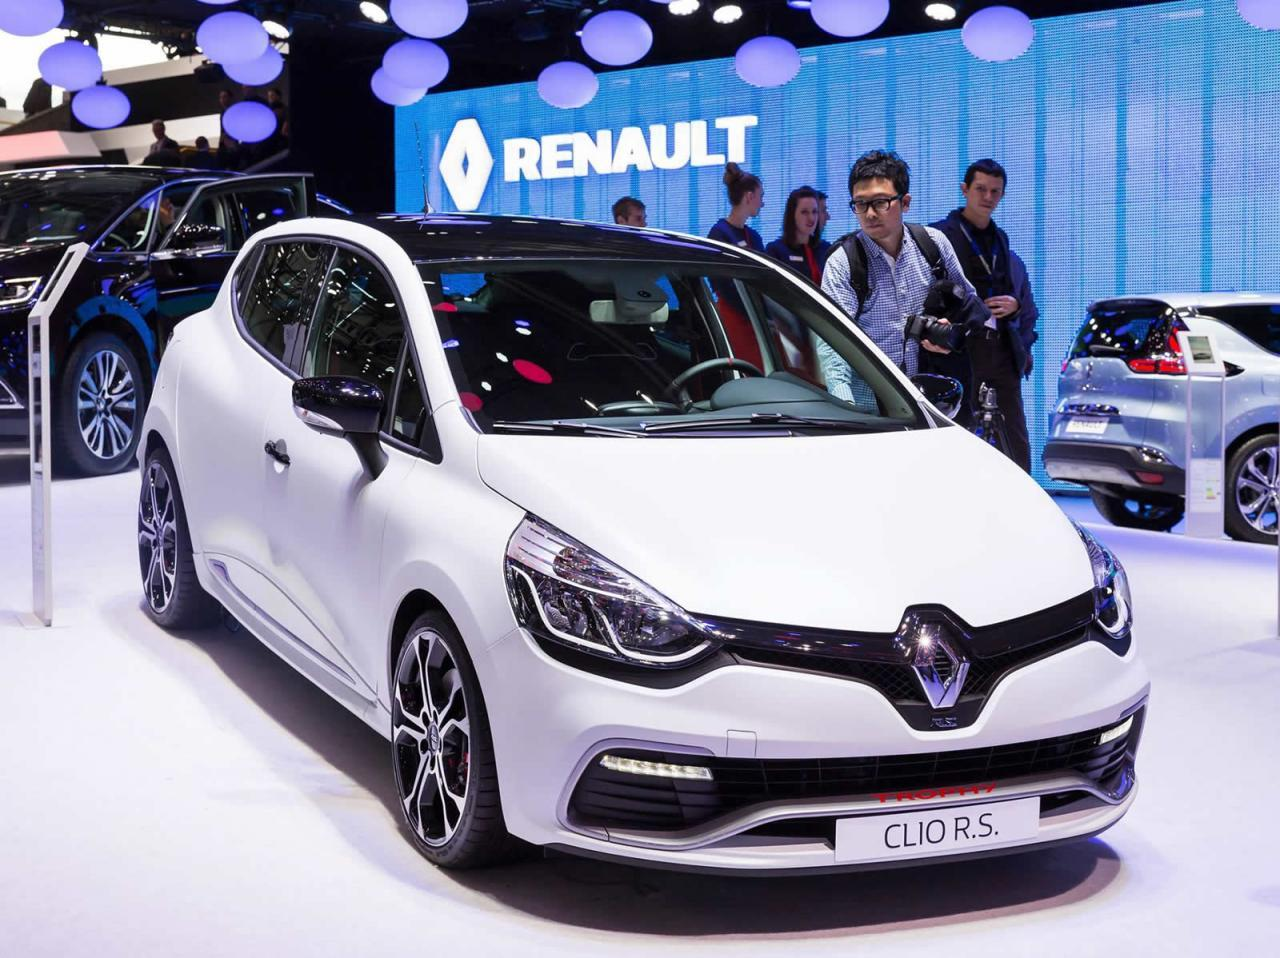 renault clio rs 220 trophy edc genewa 2015. Black Bedroom Furniture Sets. Home Design Ideas